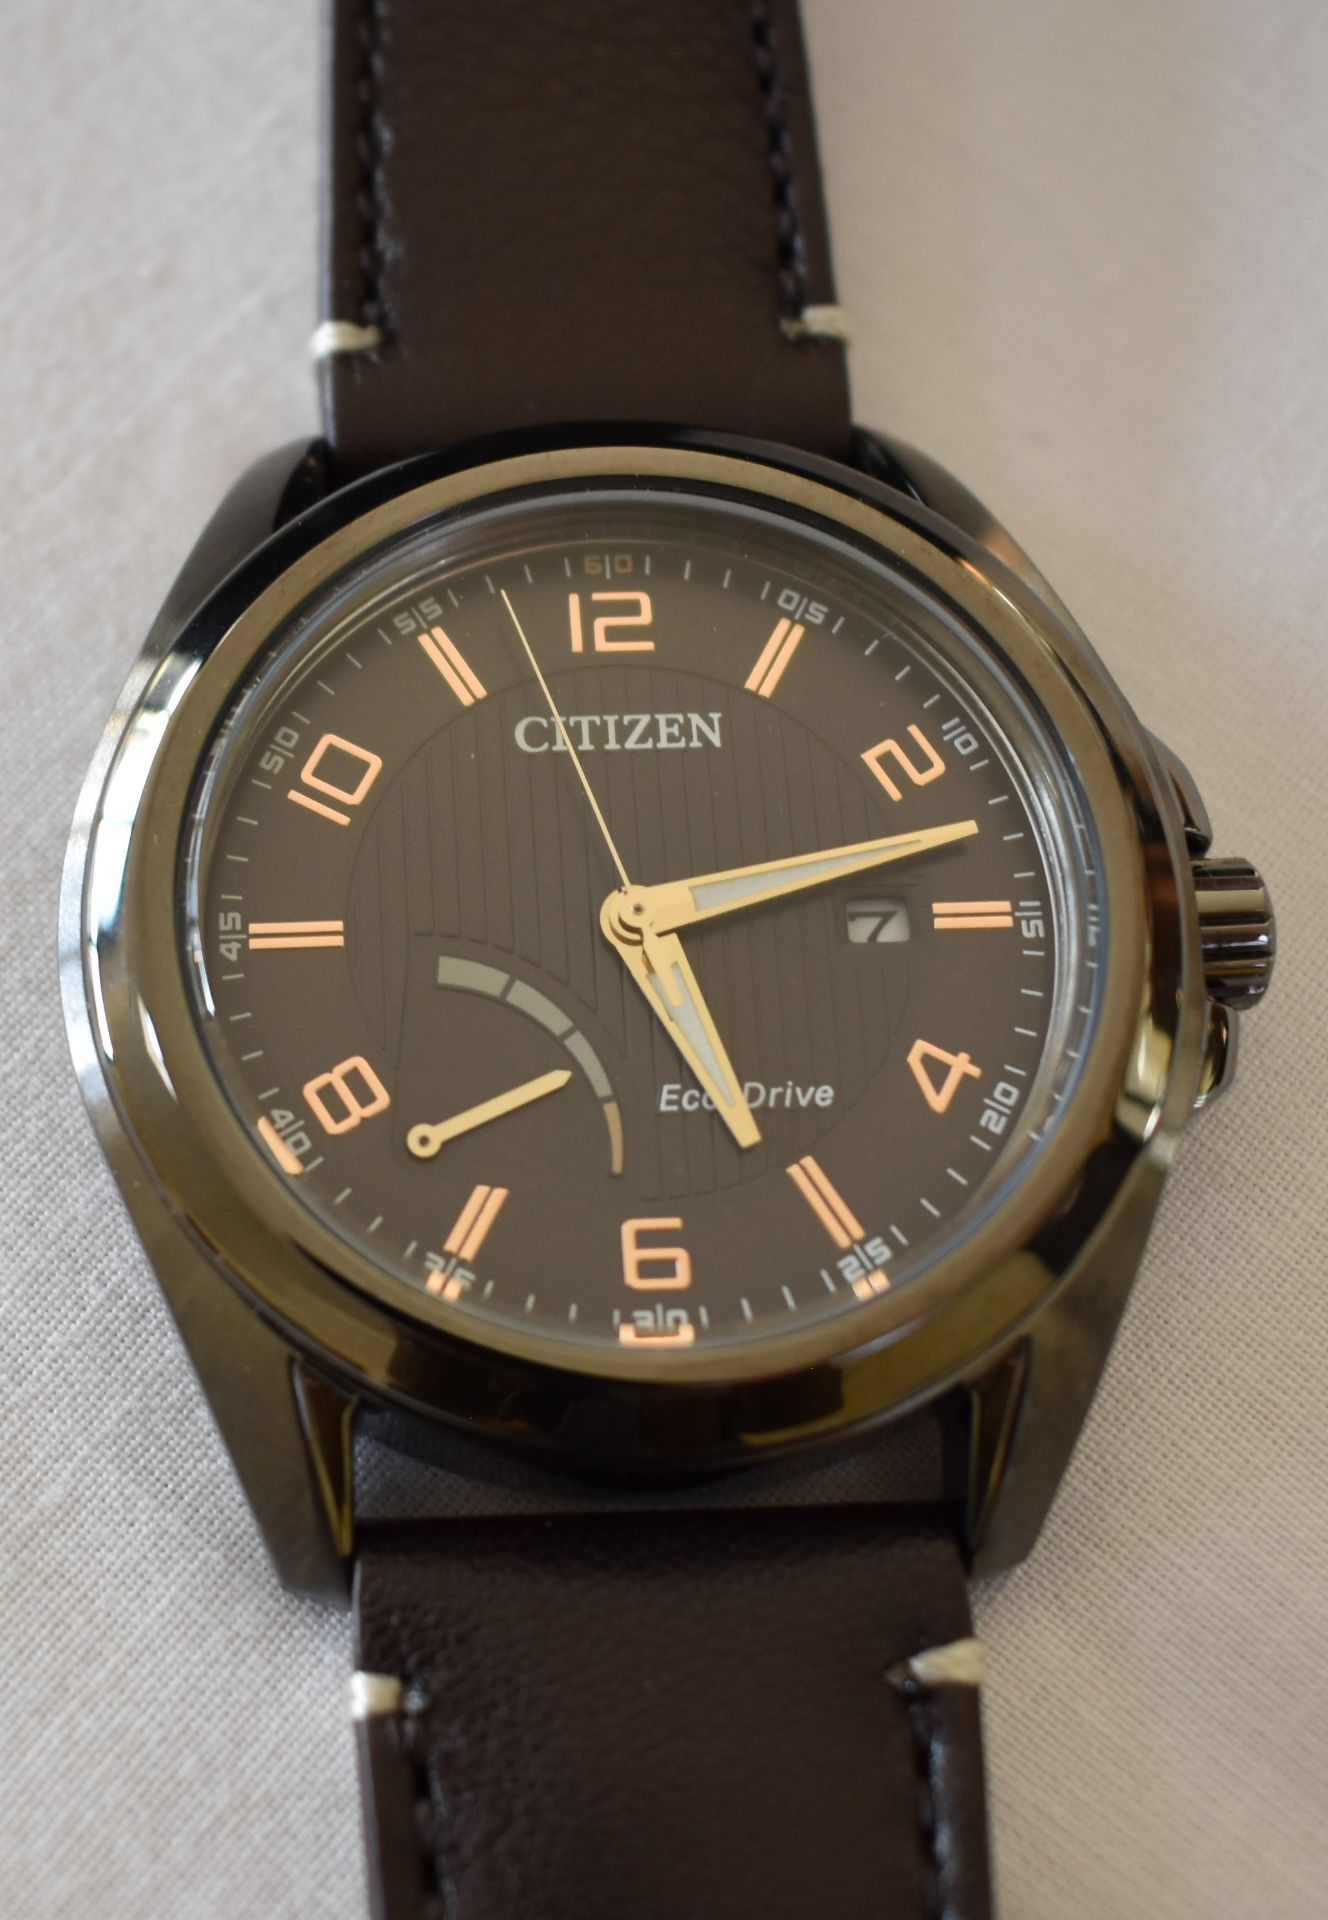 Citizen Men's Watch AW7057-18H - Image 2 of 3